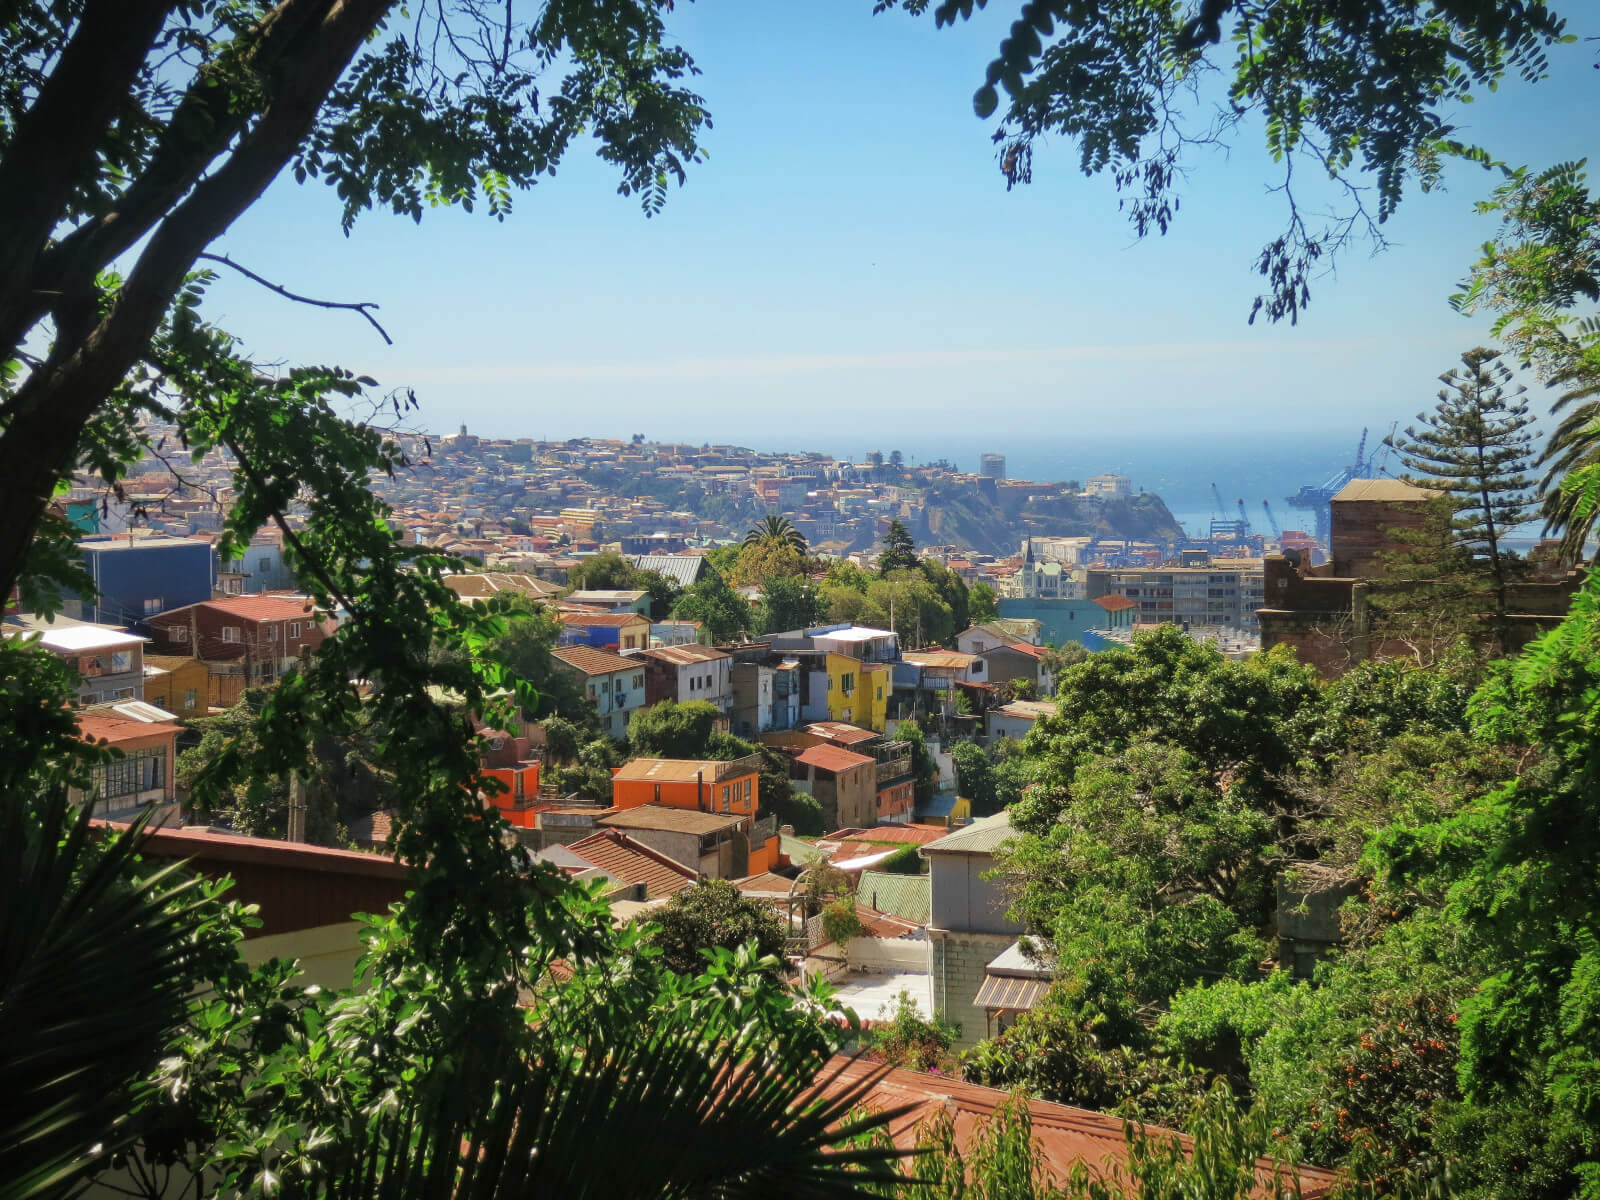 Sunny Valparaiso, Chile as seen from Pablo Neruda's house! Nearby Valparaiso is Casablanca Valley, a fantastic place to go wine tasting in Chile without a tour!